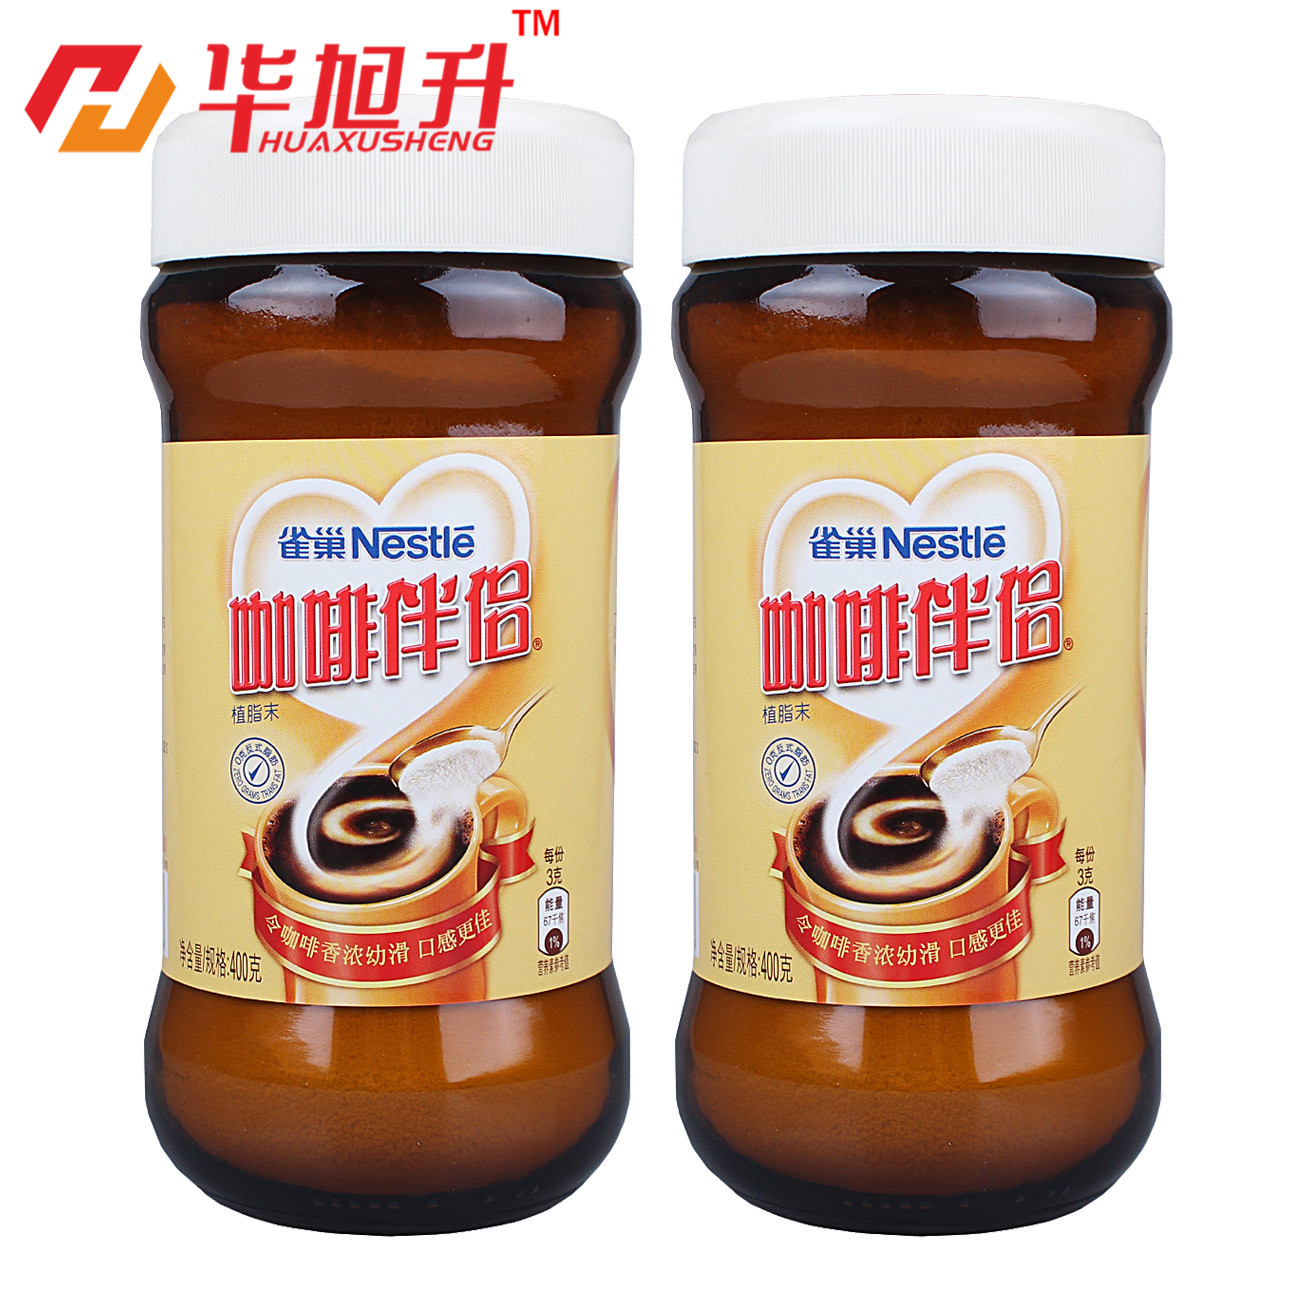 2 bottles of many provinces shipping nestle/nestle nestle coffee mate creamer milk tea 400g * 2 bottles